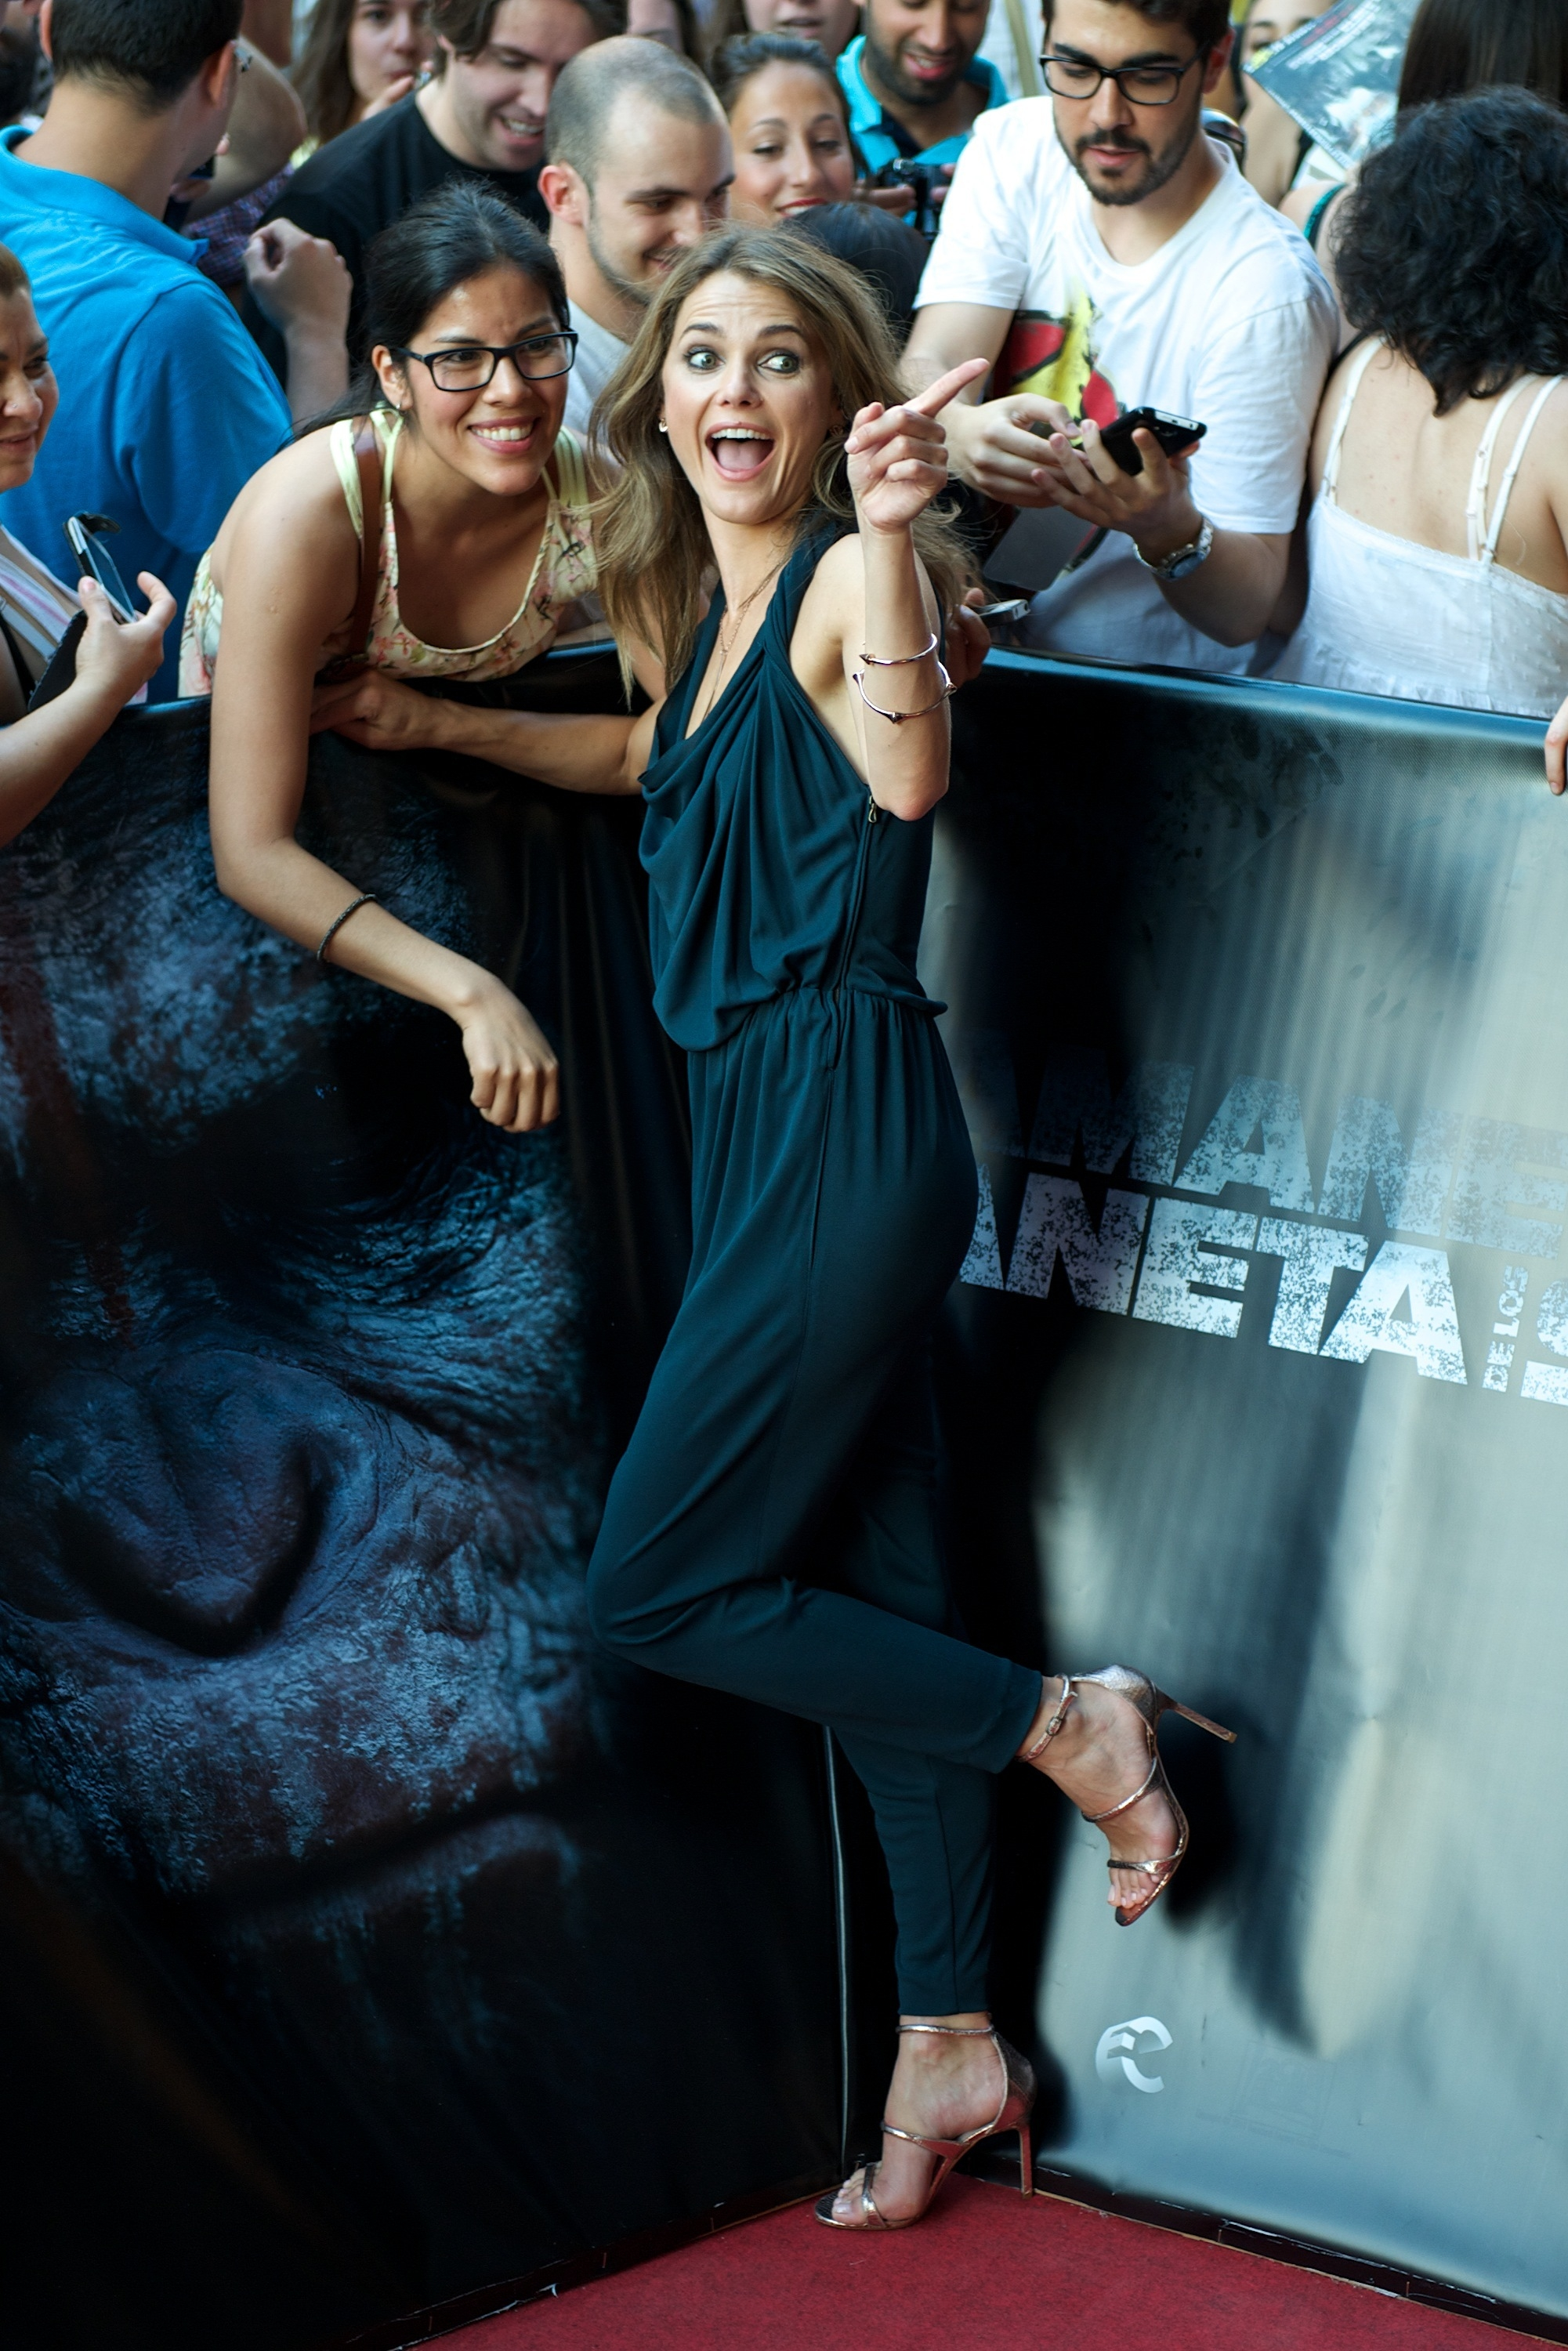 """Monkeying around: Actress Keri Russell works the crowd at the premiere of the film """"Dawn of the Planet of the Apes"""" on Wednesday in Madrid."""